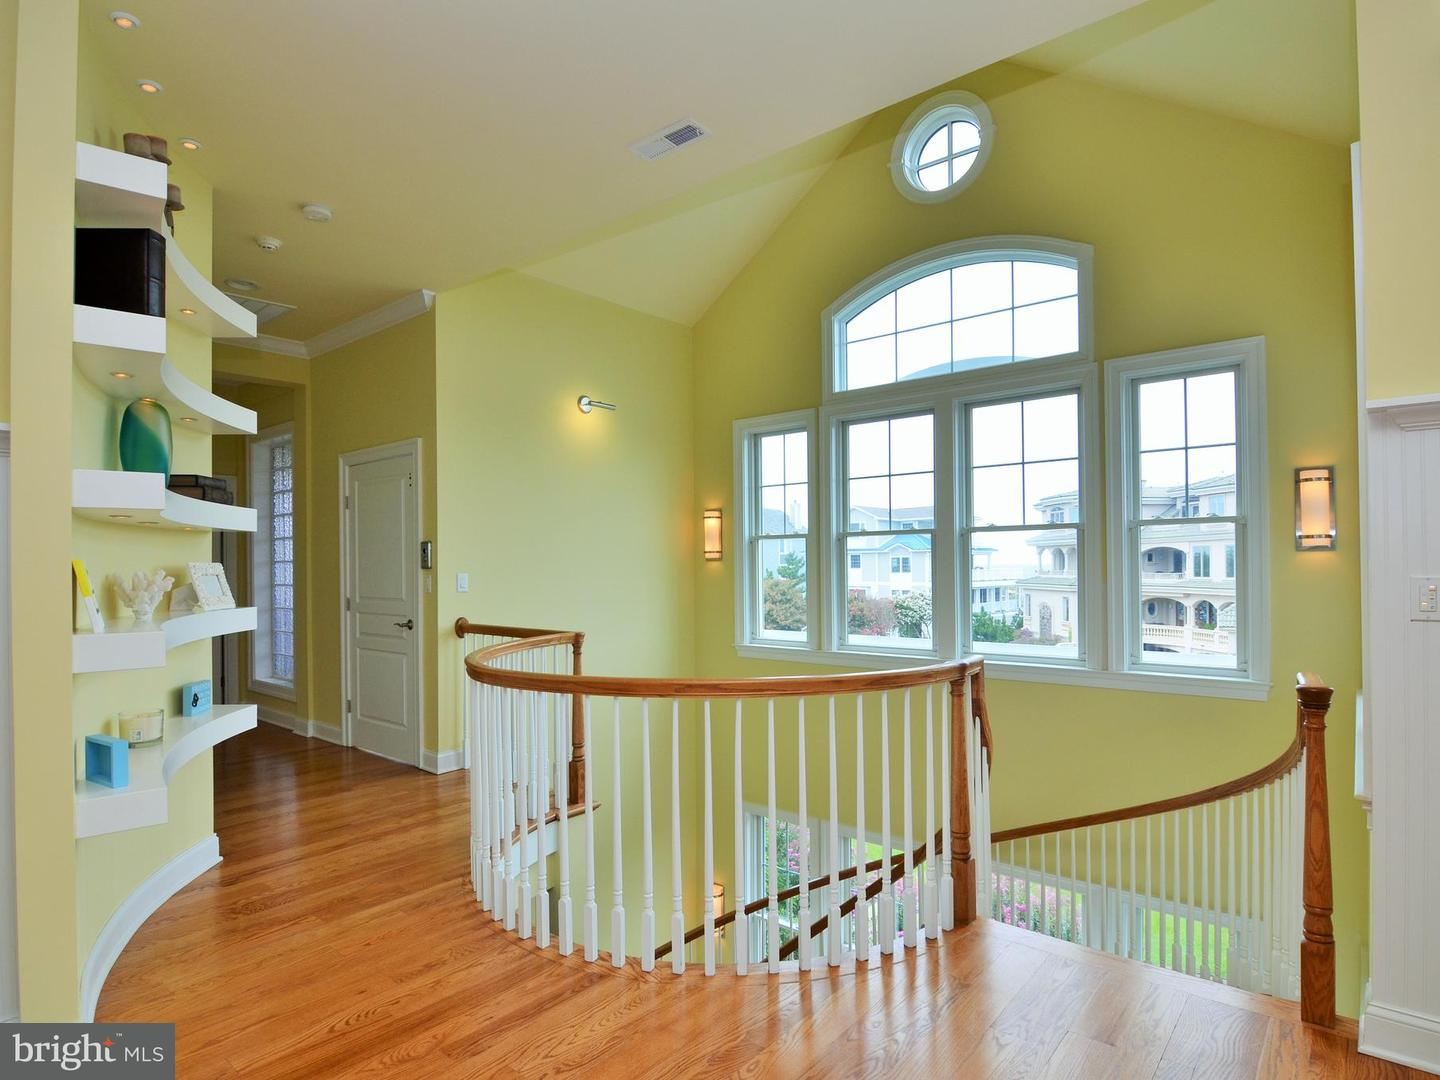 1002293530-300500807643-2018-09-25-15-08-25 31 Hall Ave | Rehoboth Beach, De Real Estate For Sale | MLS# 1002293530  - Suzanne Macnab